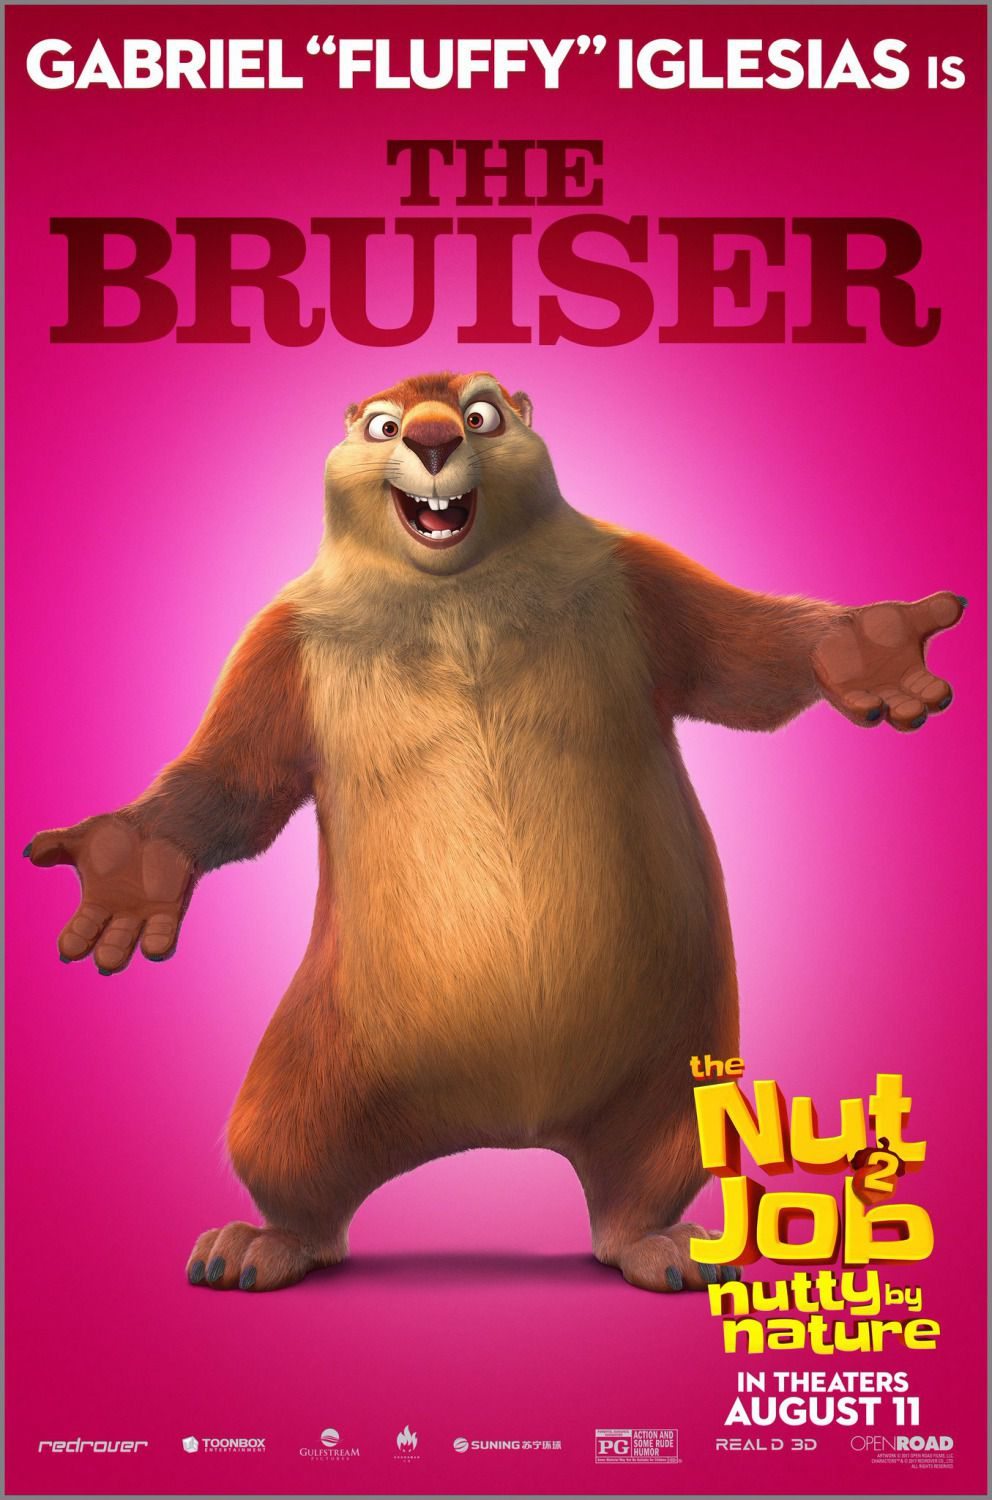 Film - The Nut Job 2 - Operazione Nocciolina 2 - Nutty by Nature - The Bruiser